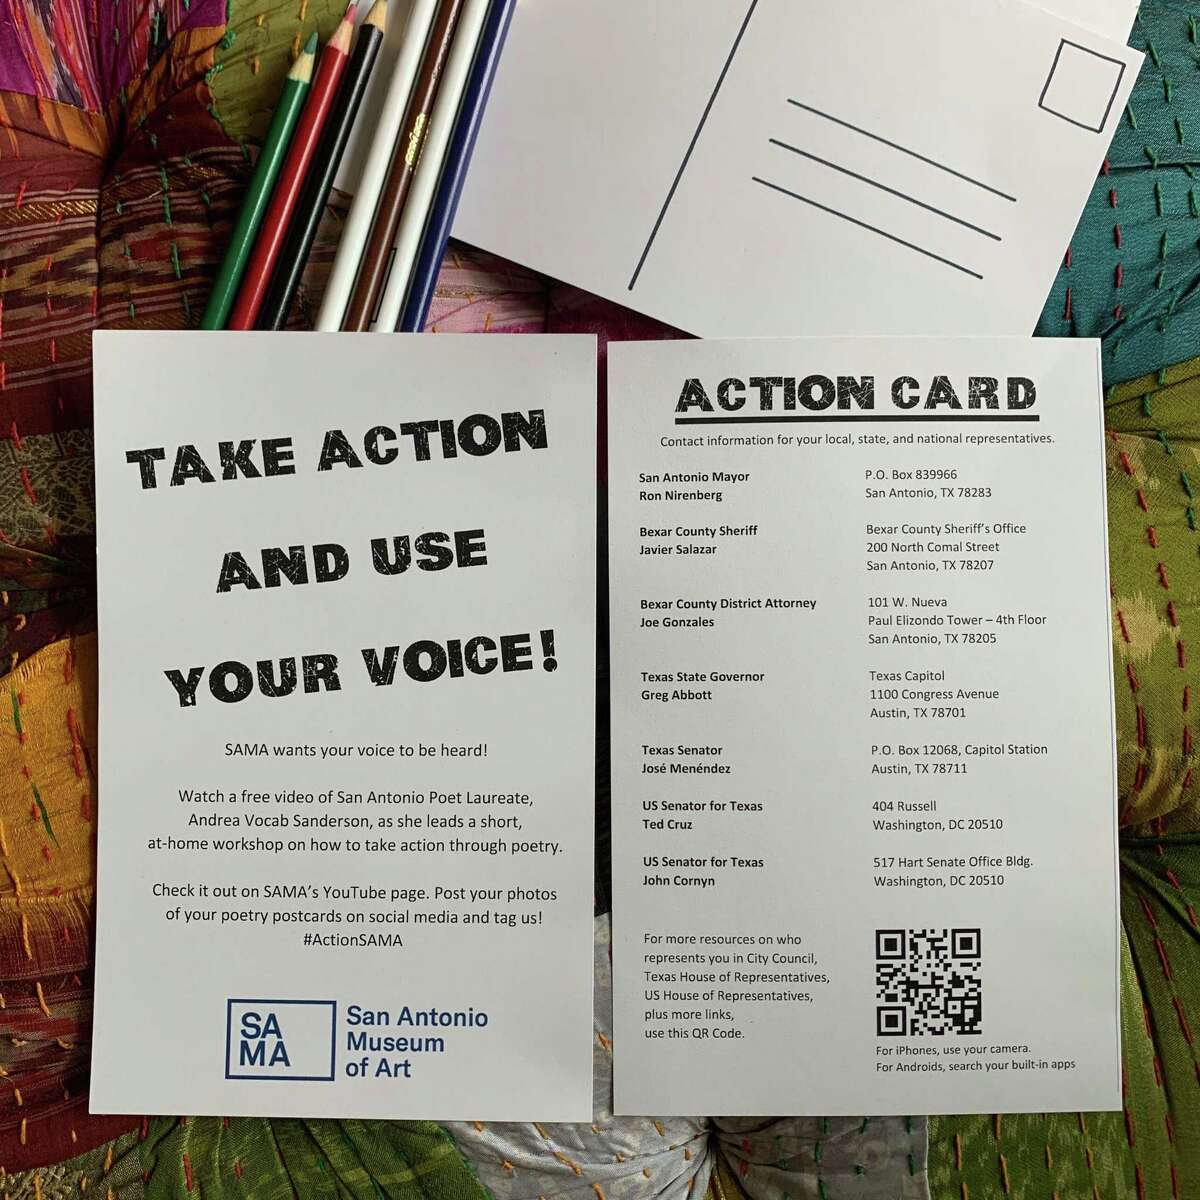 The action bags contain blank postcards, colored pencils and a list of addresses for government officials.